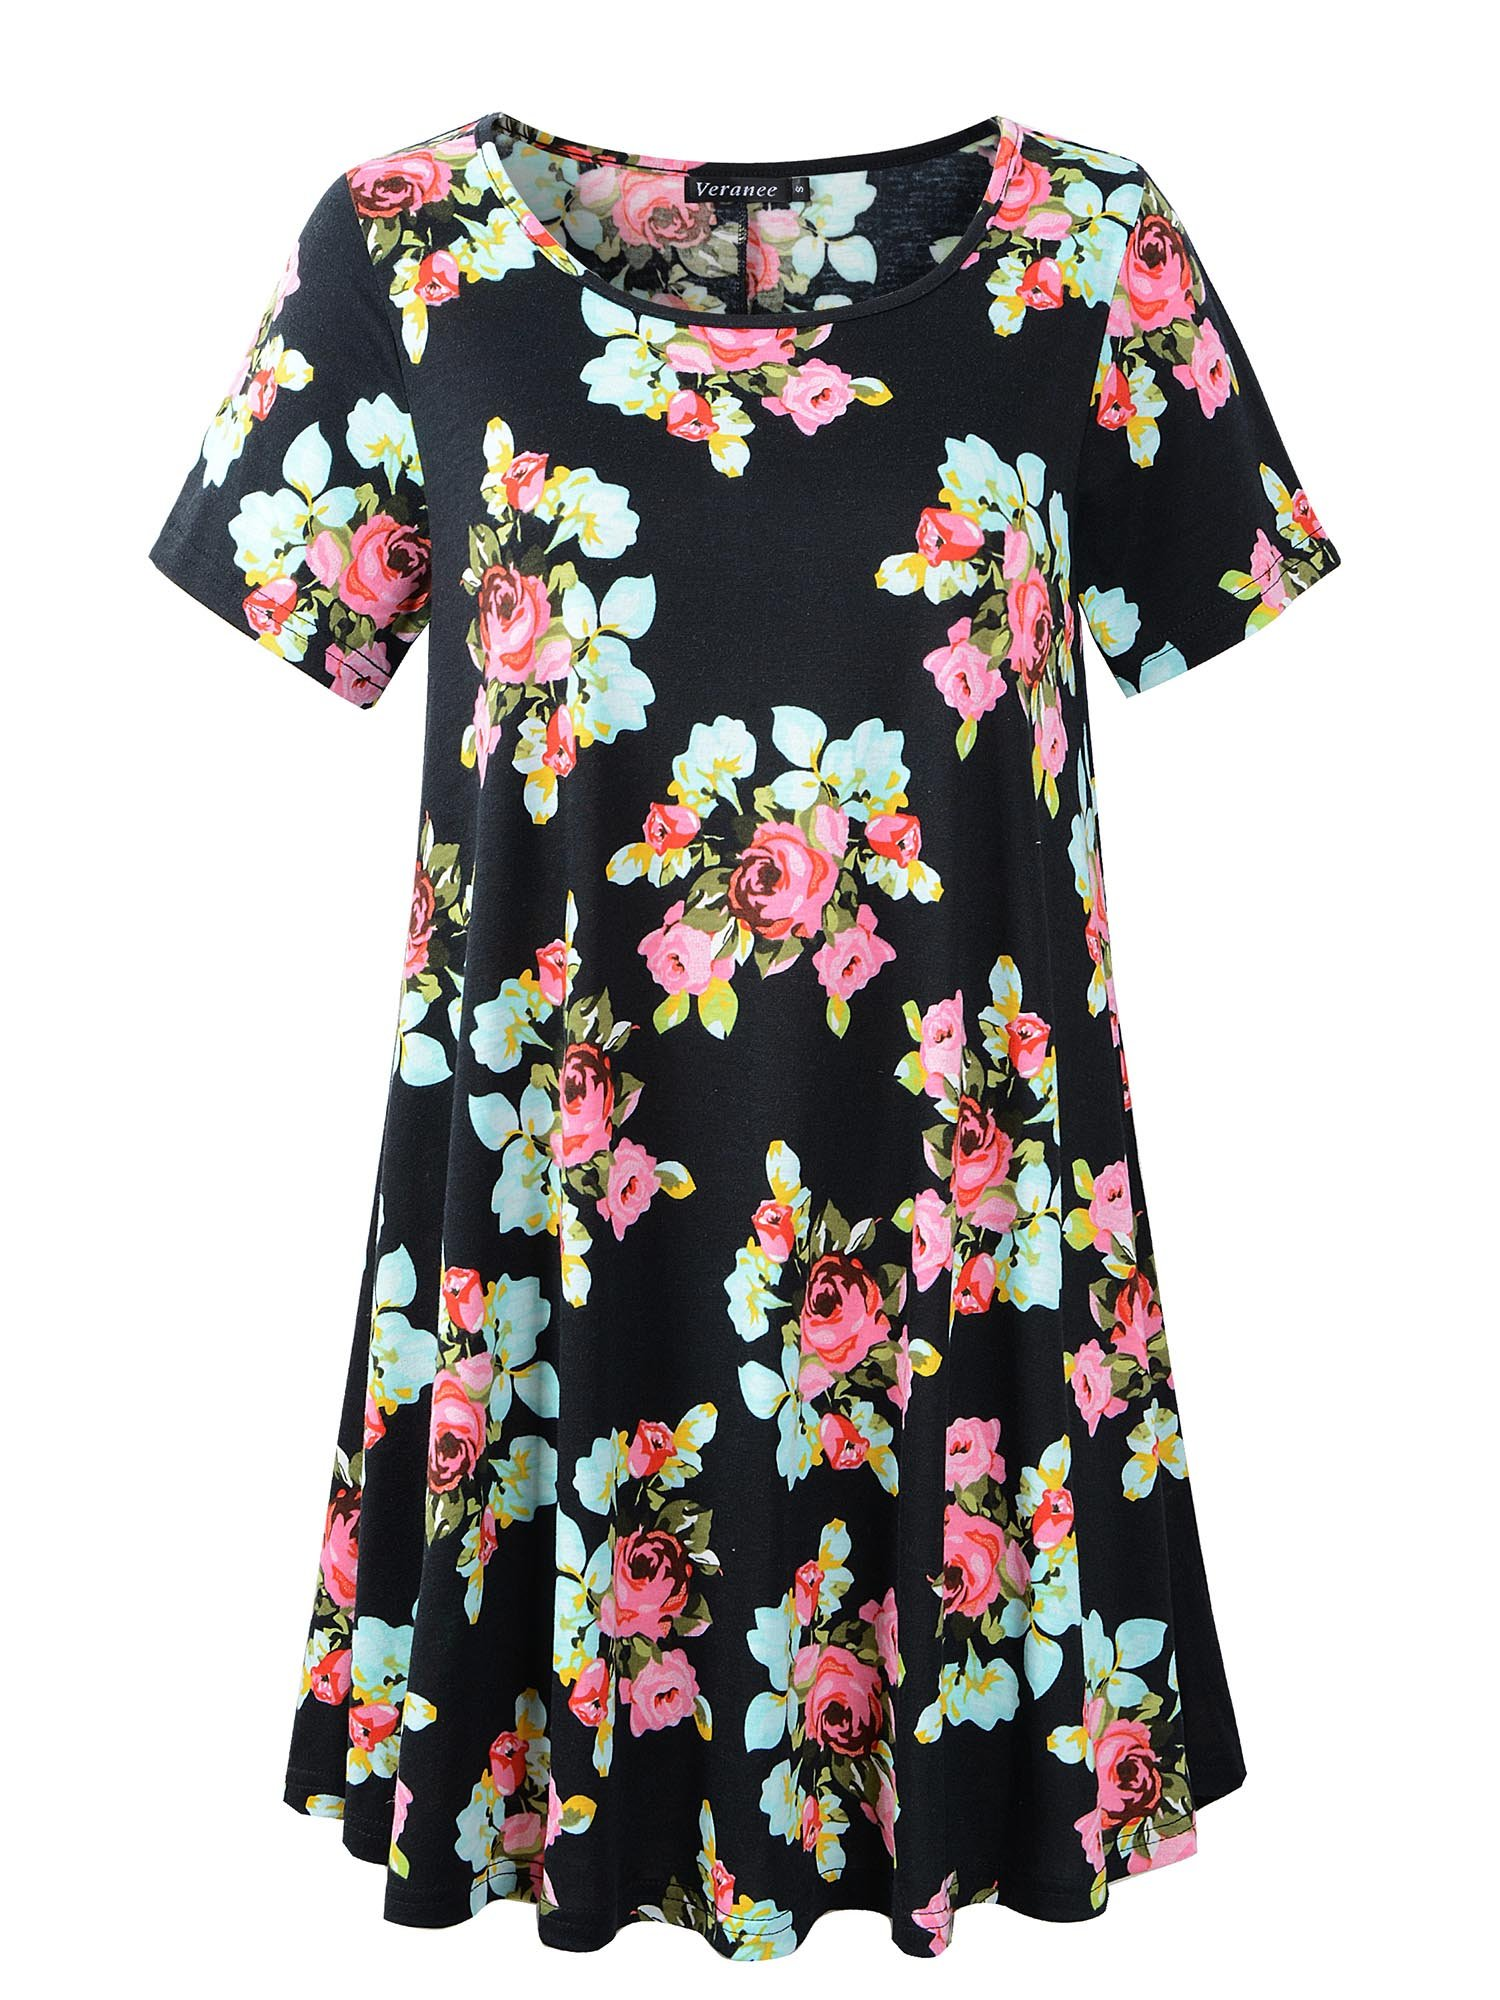 Veranee Women's Plus Size Swing Tunic Top Short Sleeve Floral Flare T-Shirt (X-Large, 56-1)